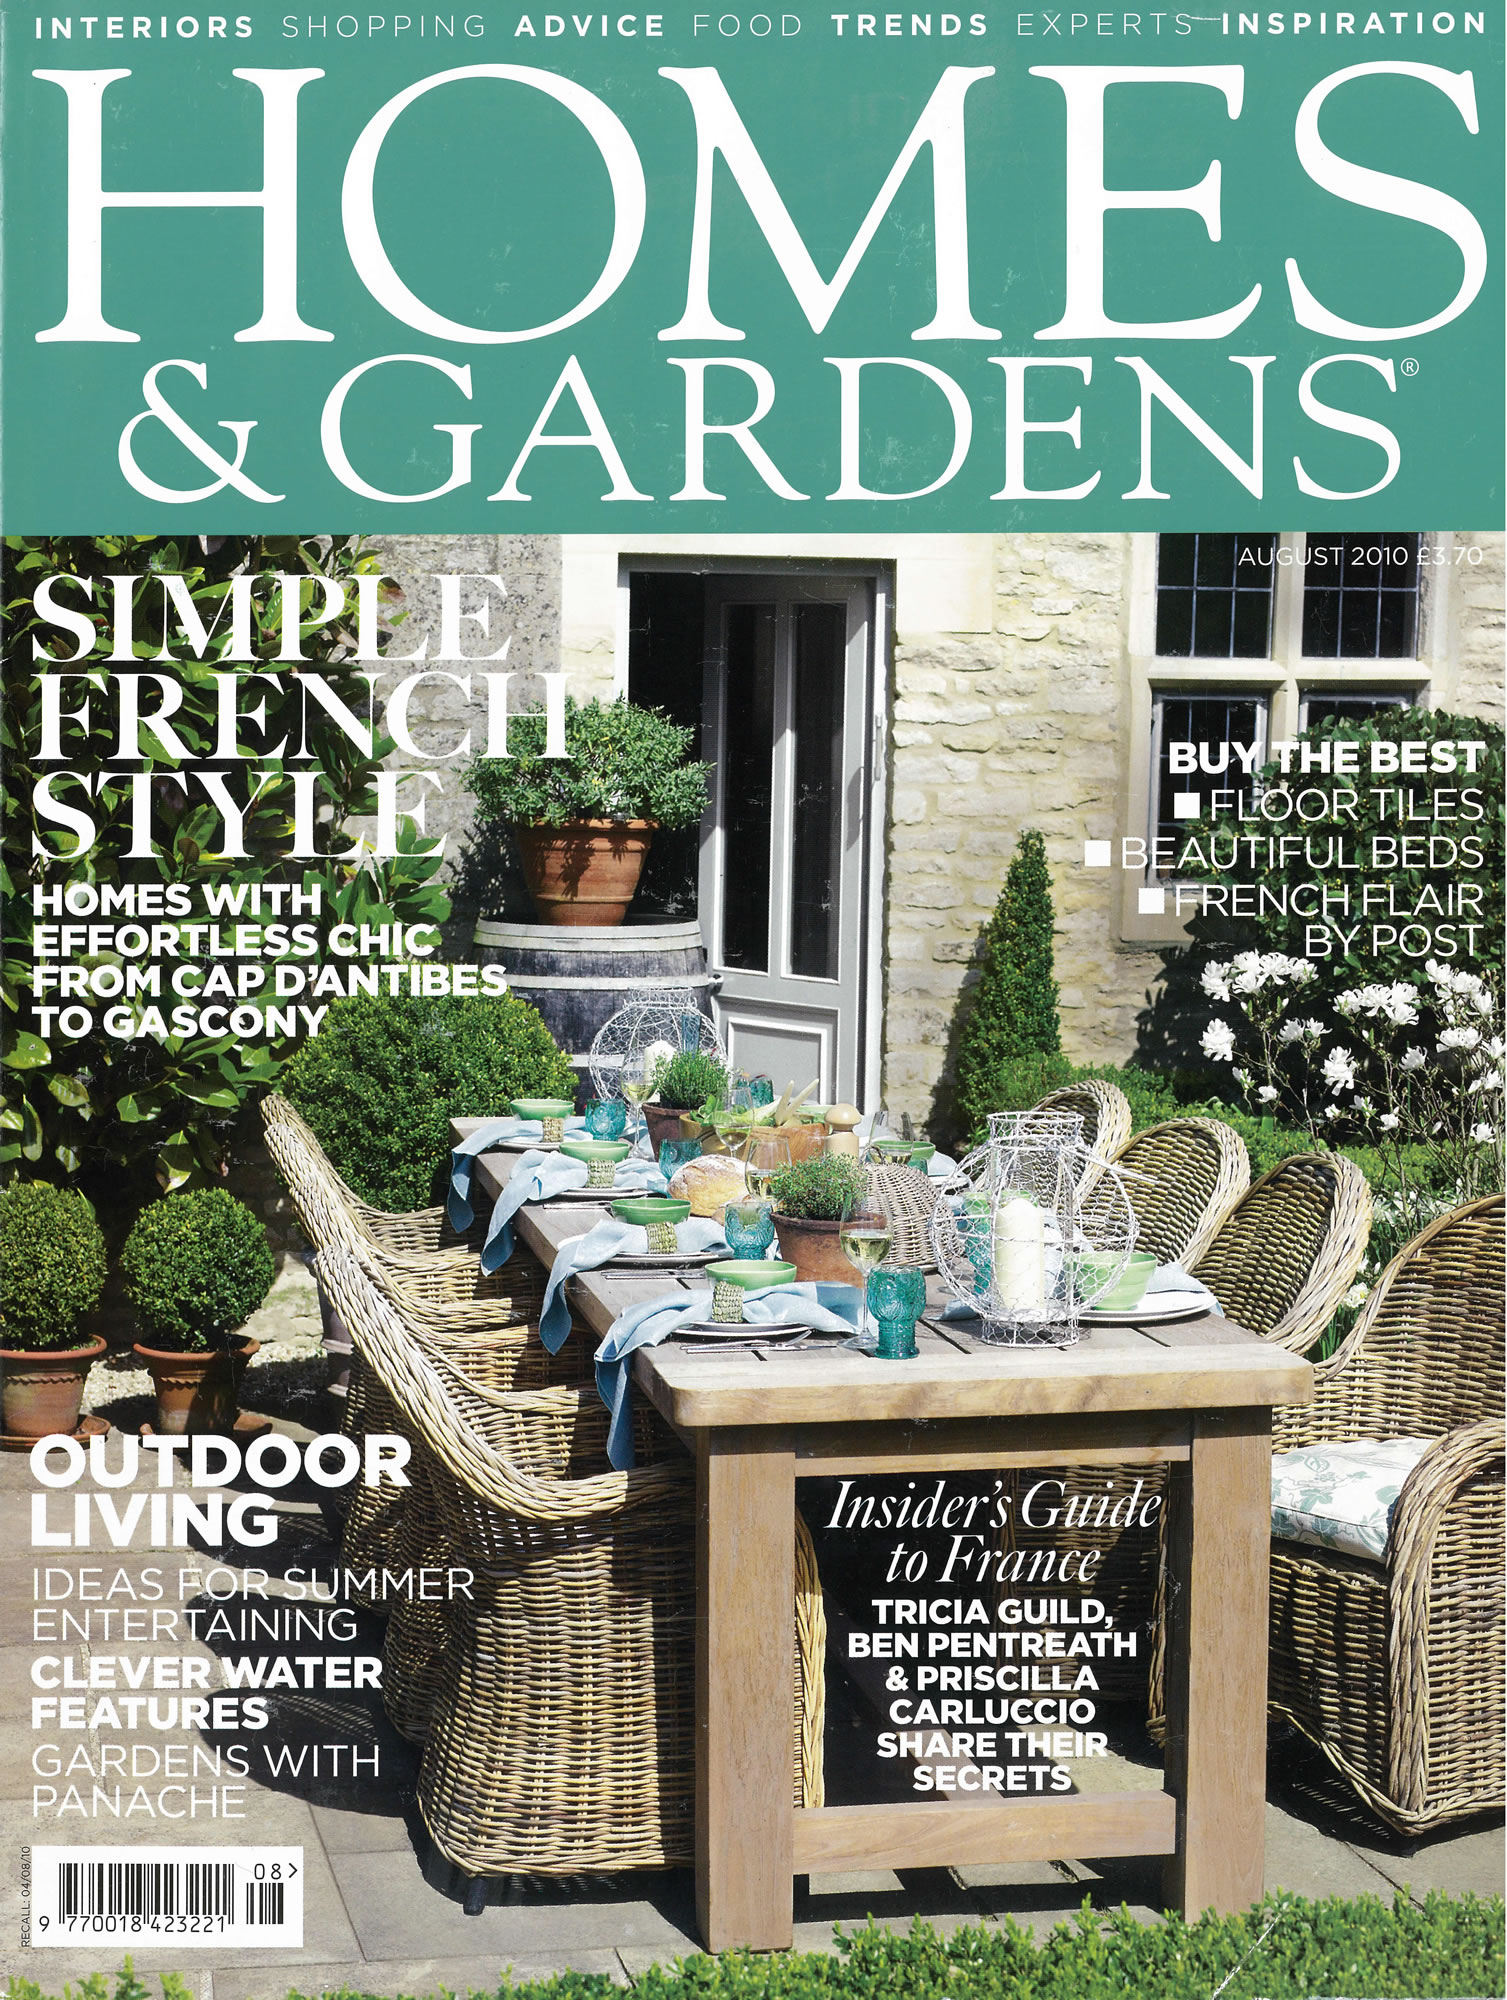 Homes & Gardens FP August 2010